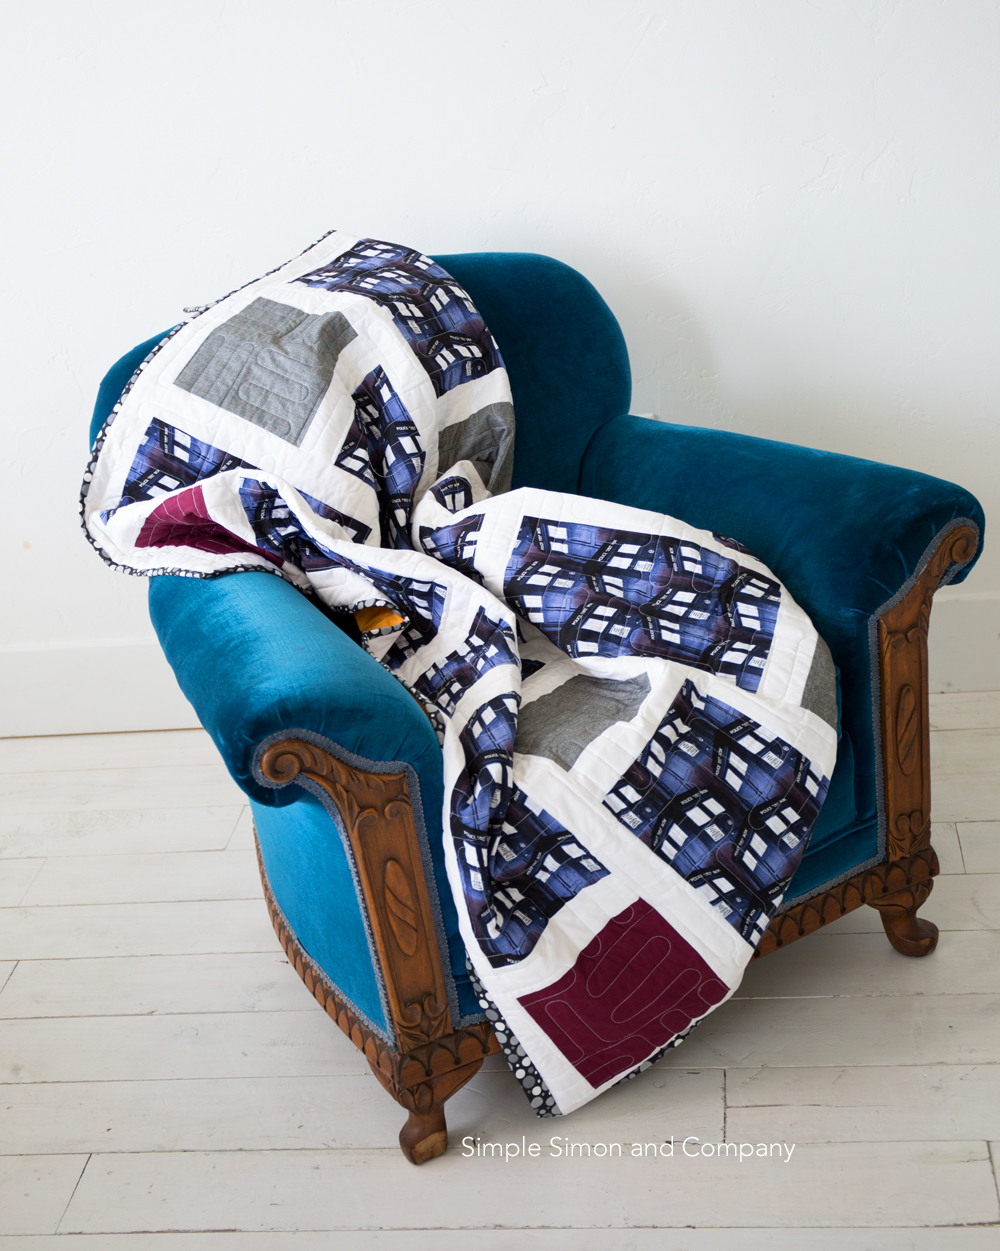 10 Tips for Photographing Quilts or Sewing Projects